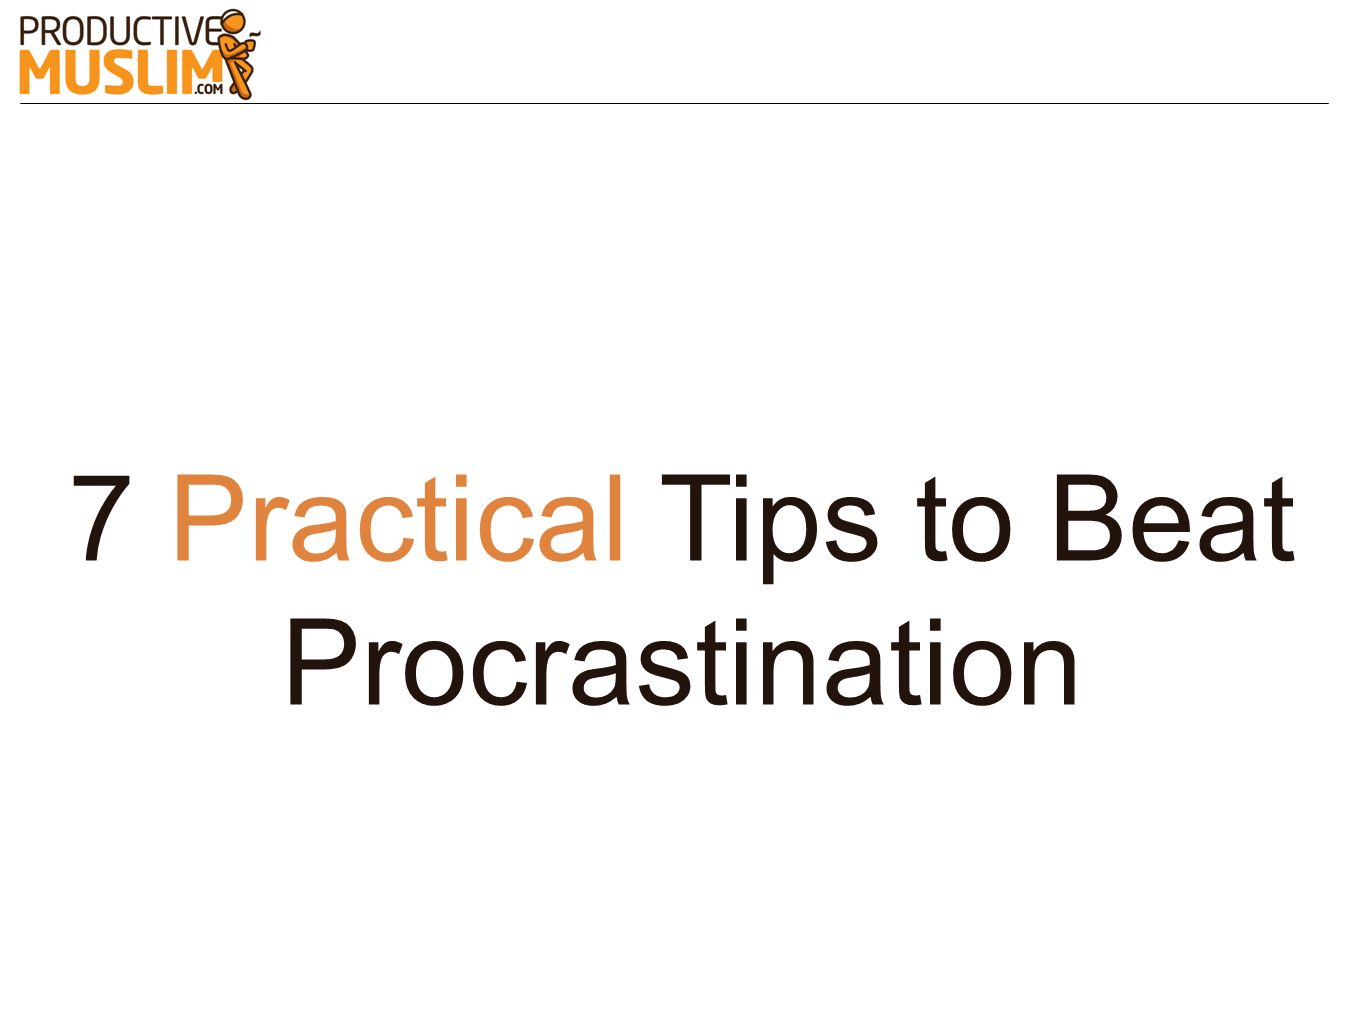 7 Practical Tips to Beat Procrastination